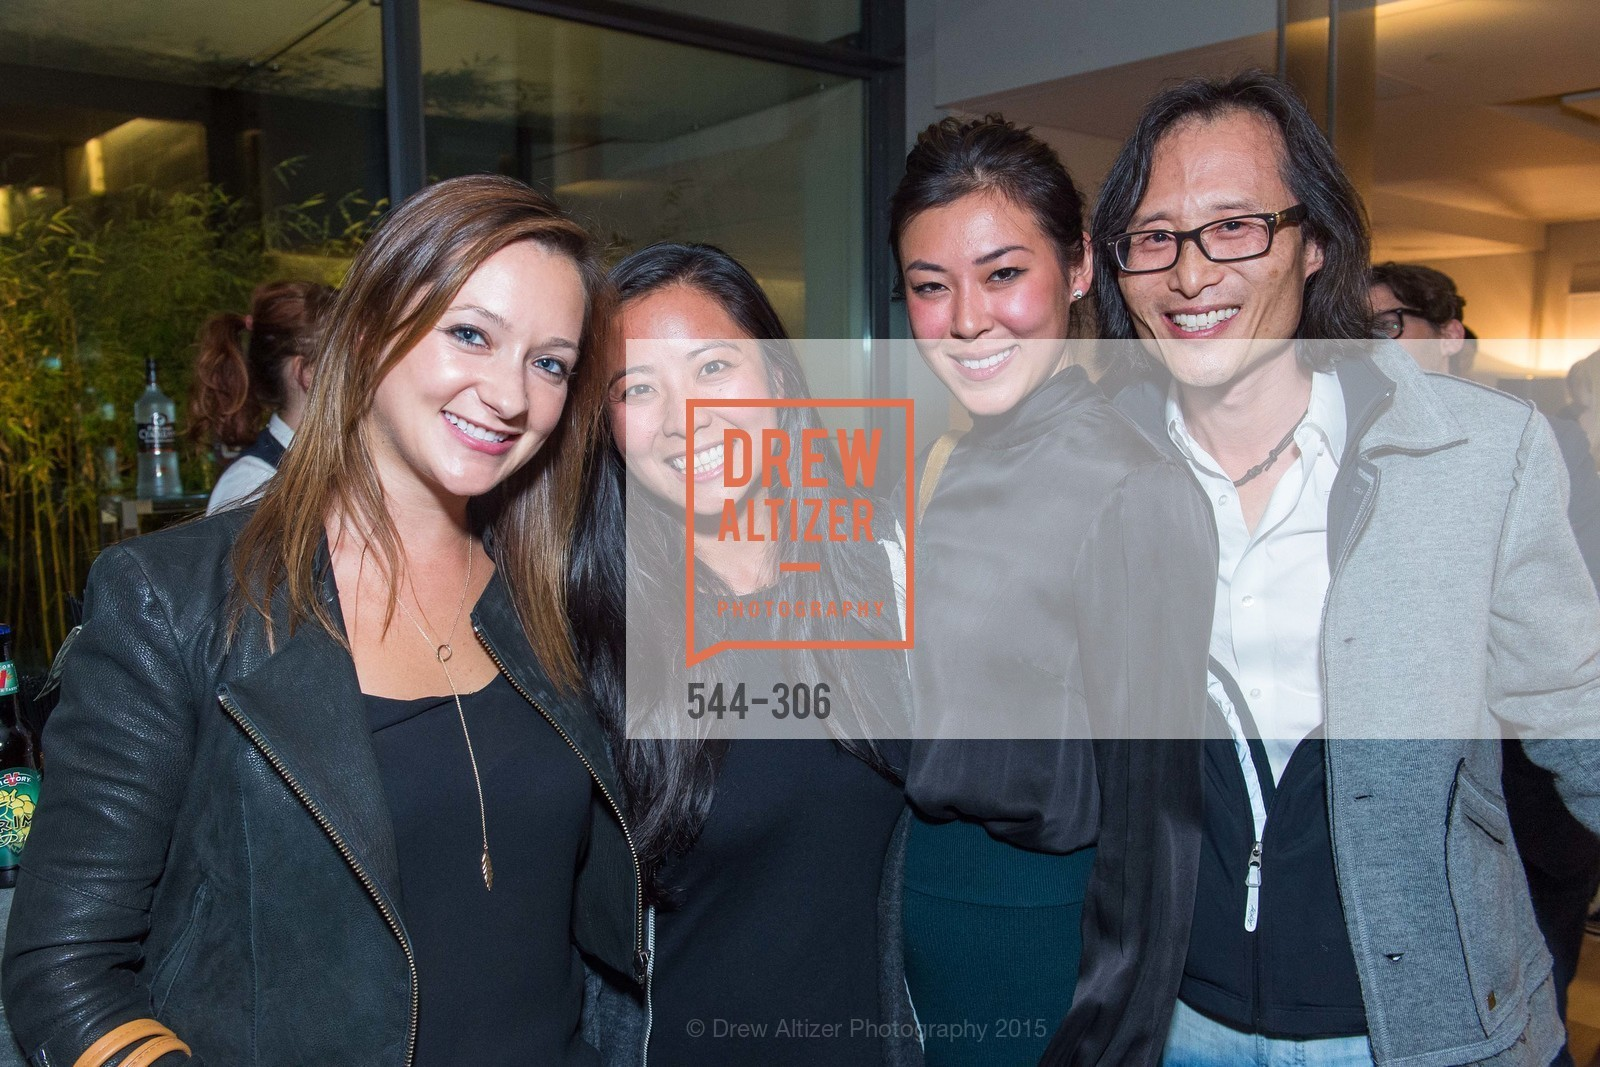 Ann Kolontyrsky, Cece Cheng, Richard Ling, Sparkpr's Annual Rooftop Soirée, The Battery Penthouse, September 22nd, 2015,Drew Altizer, Drew Altizer Photography, full-service agency, private events, San Francisco photographer, photographer california